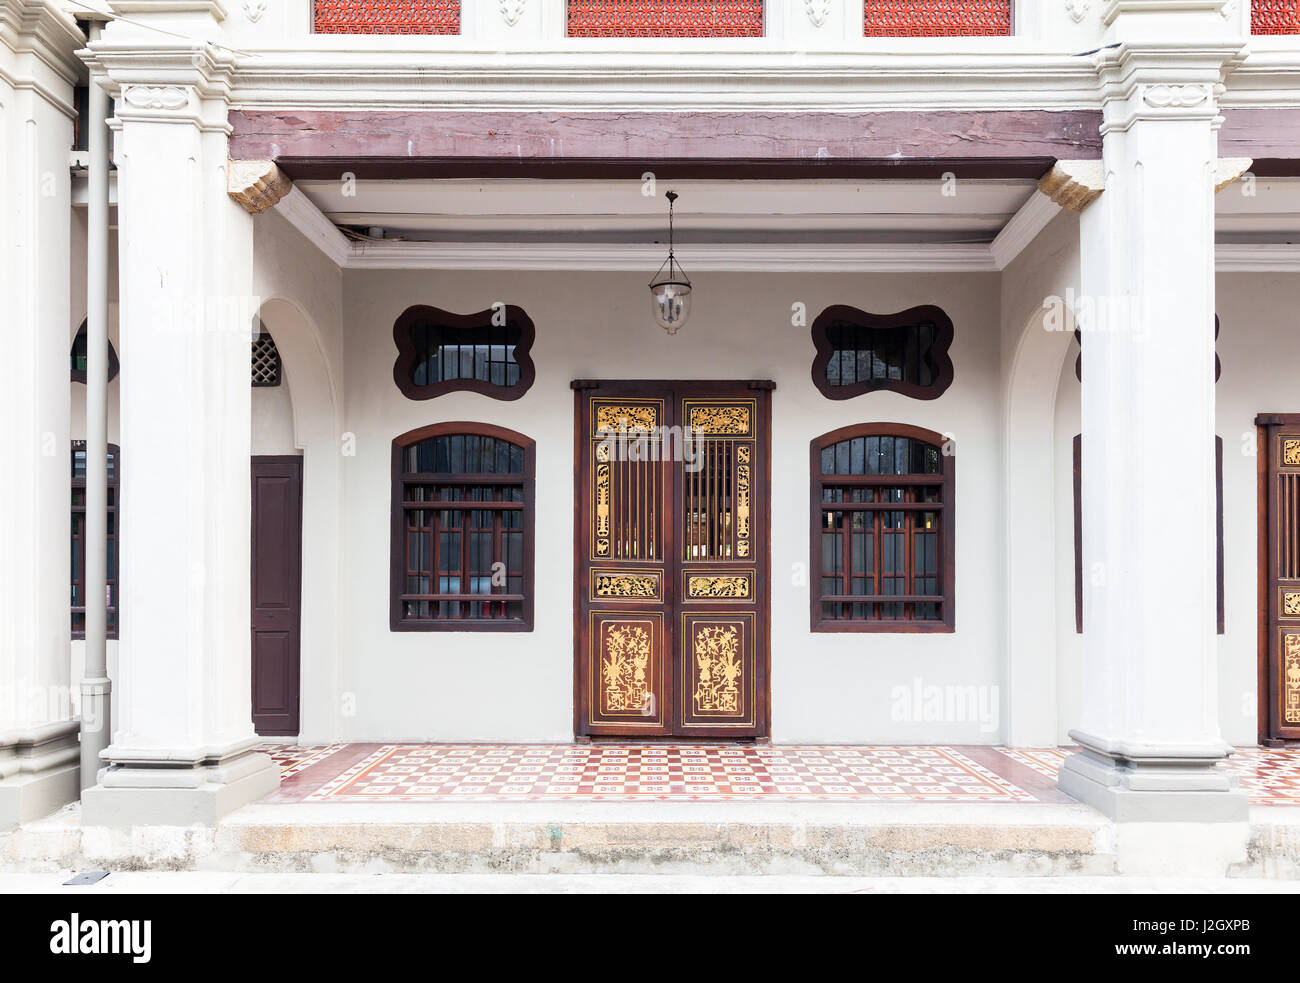 GEORGE TOWN, MALAYSIA - MARCH 22: Facade of the old historial shophouse on March 22, 2016 in George Town, Malaysia. - Stock Image